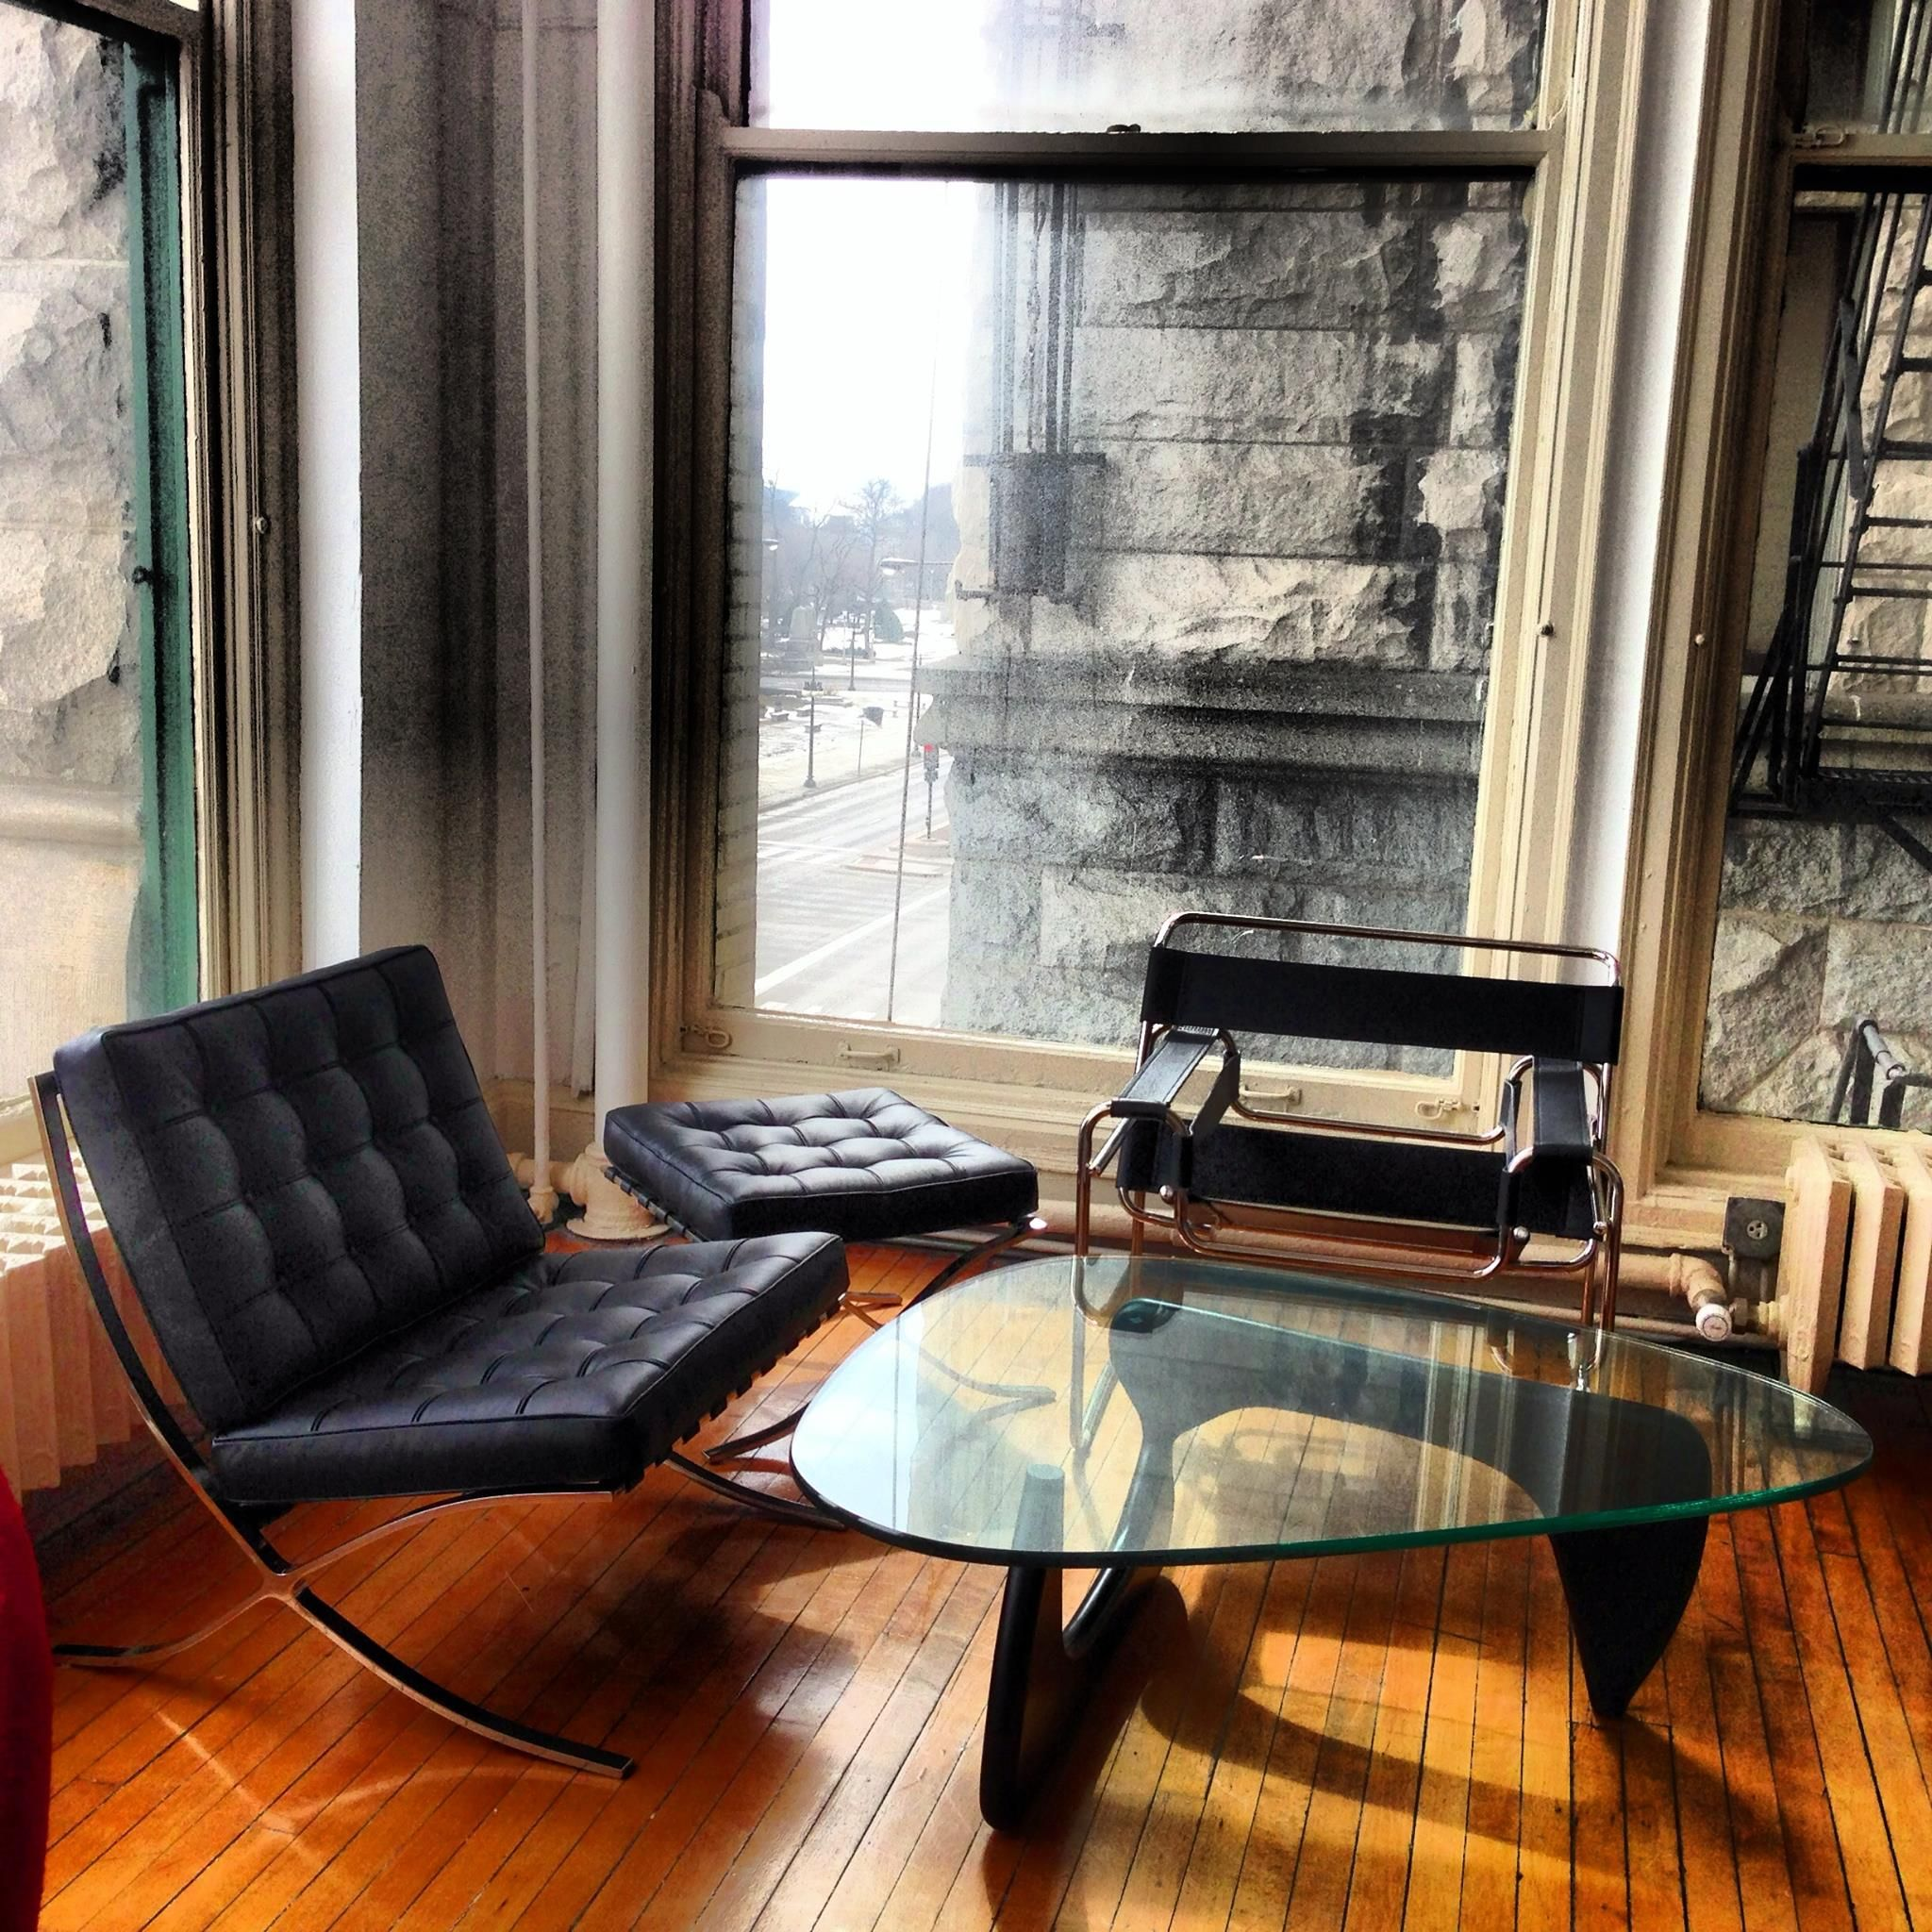 Barcelona Exhibition Chair Ottoman Wassily Chair and Noguchi